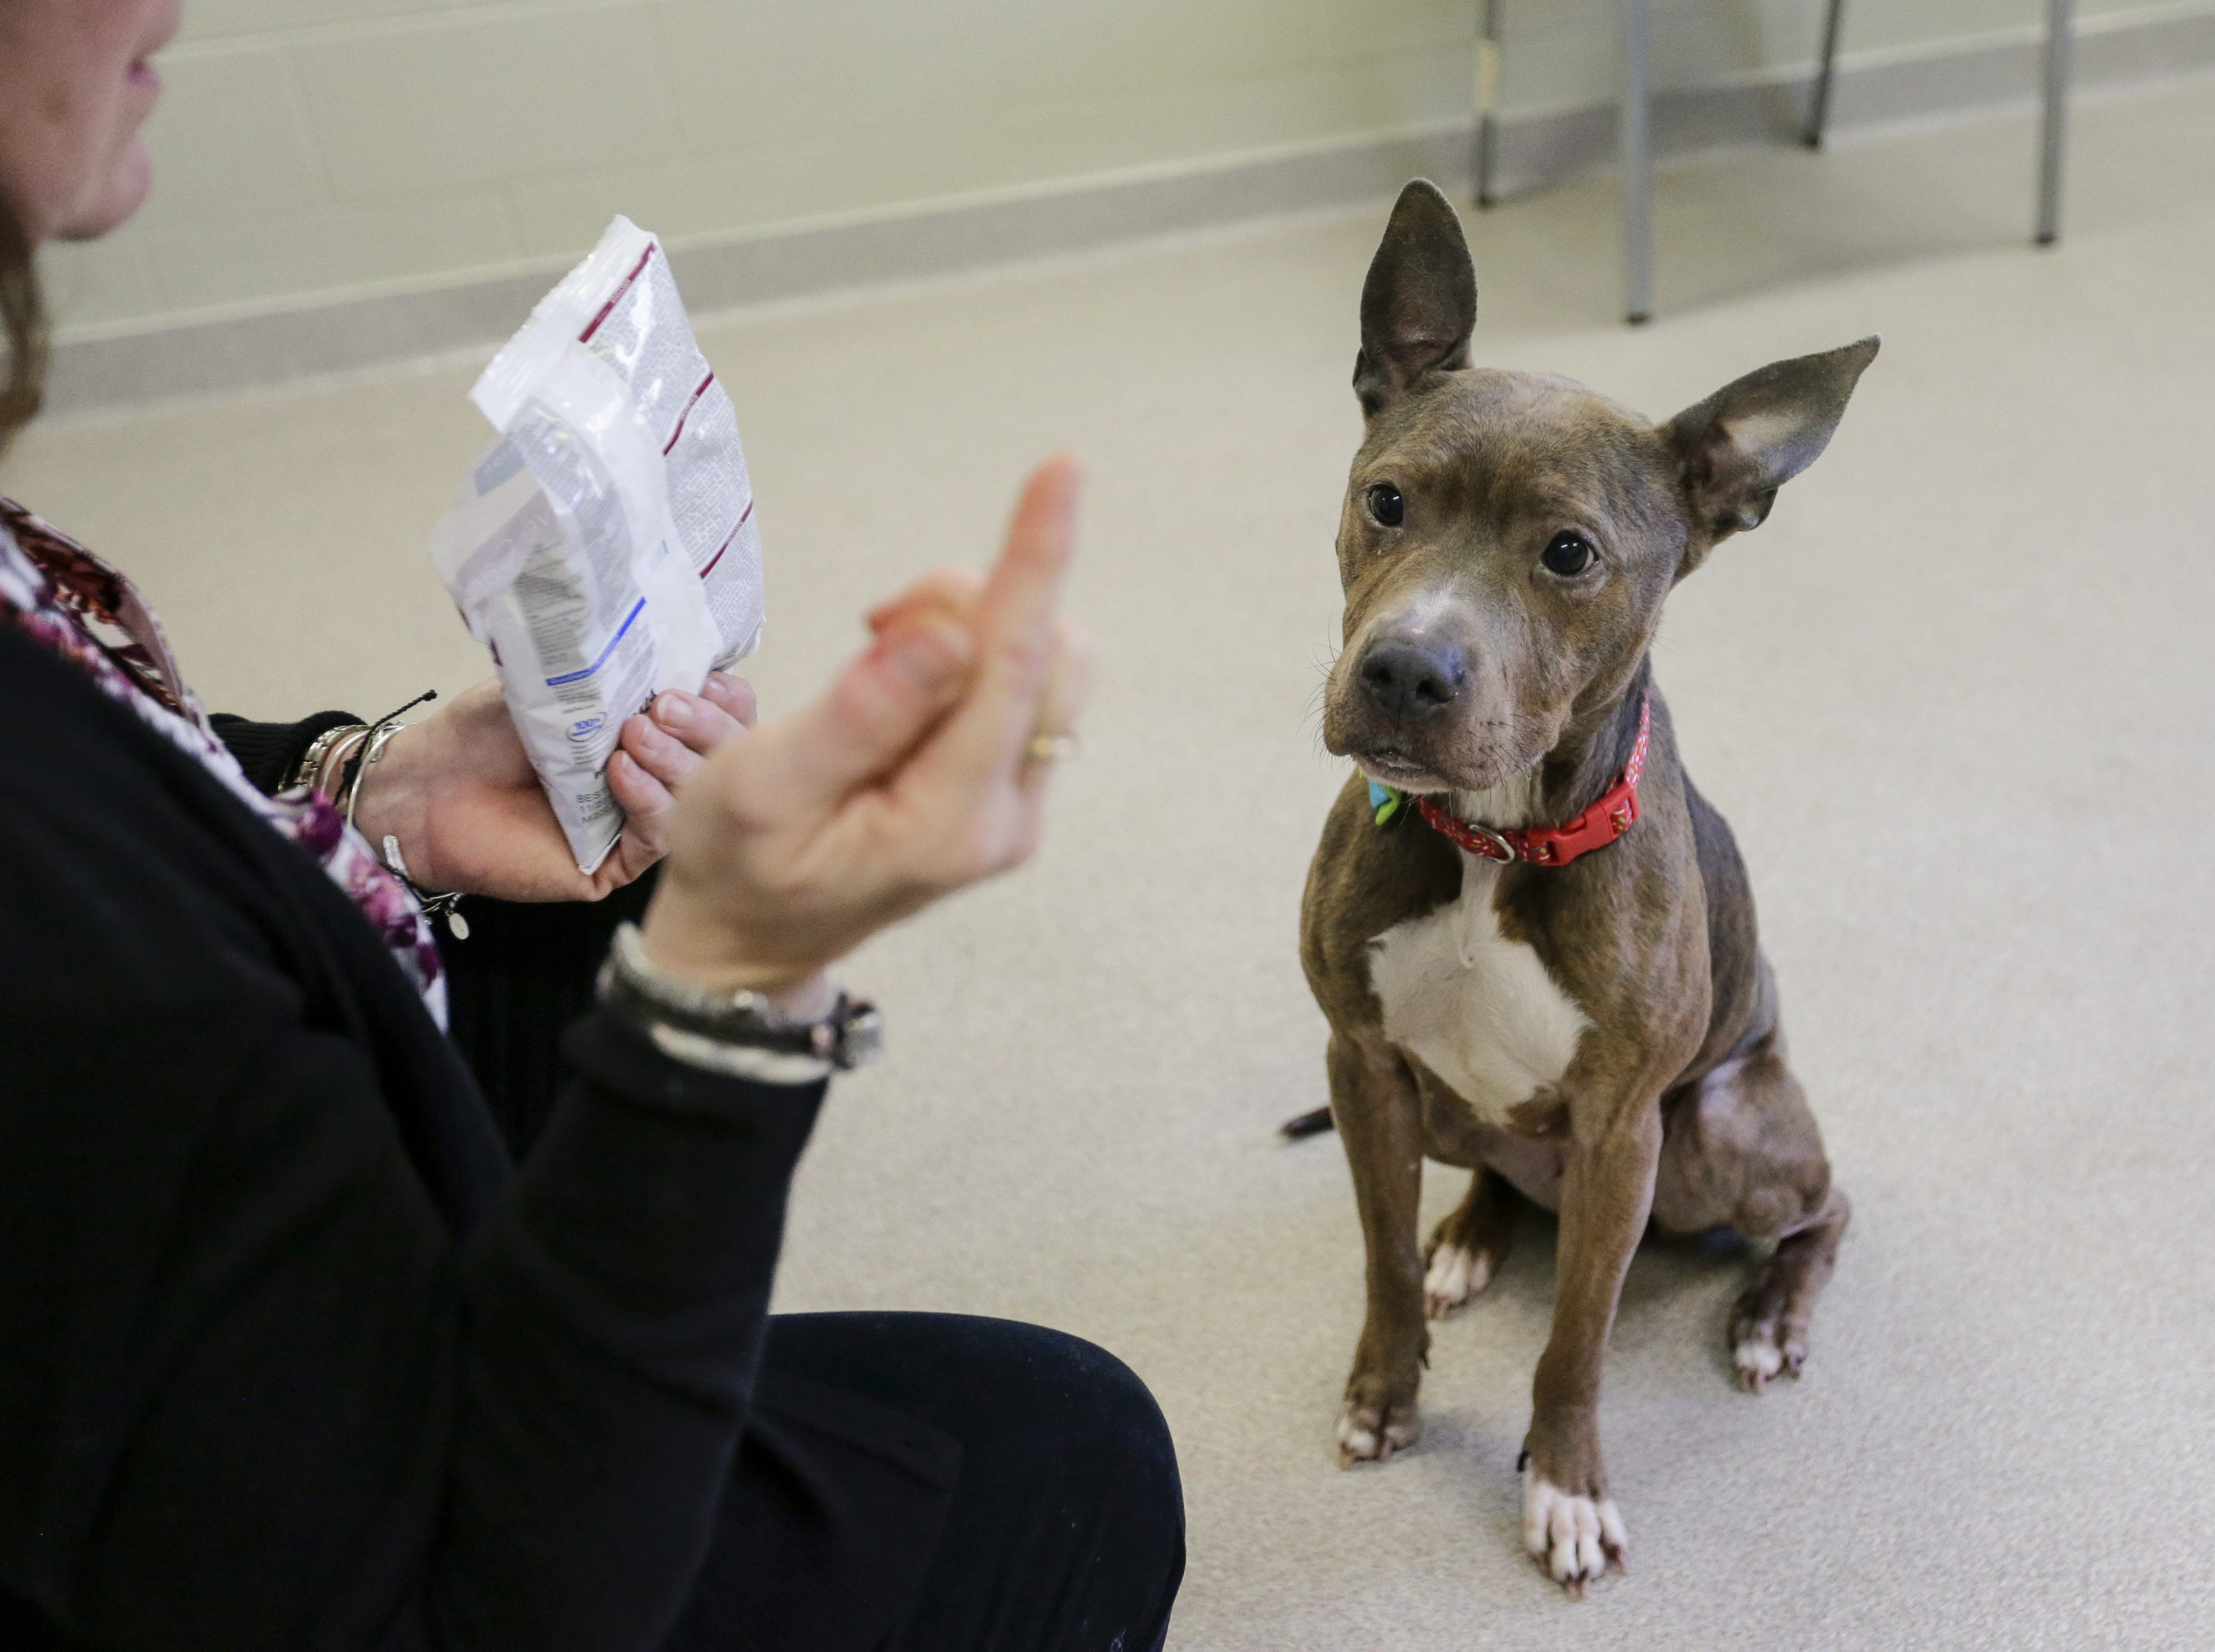 Helena waits patiently for a treat at the Lakeshore Humane Socitey Dec. 17 in Manitowoc. The pit mix was rescued after being found emaciated in a basement in the 1100 block of North Eighth Street.